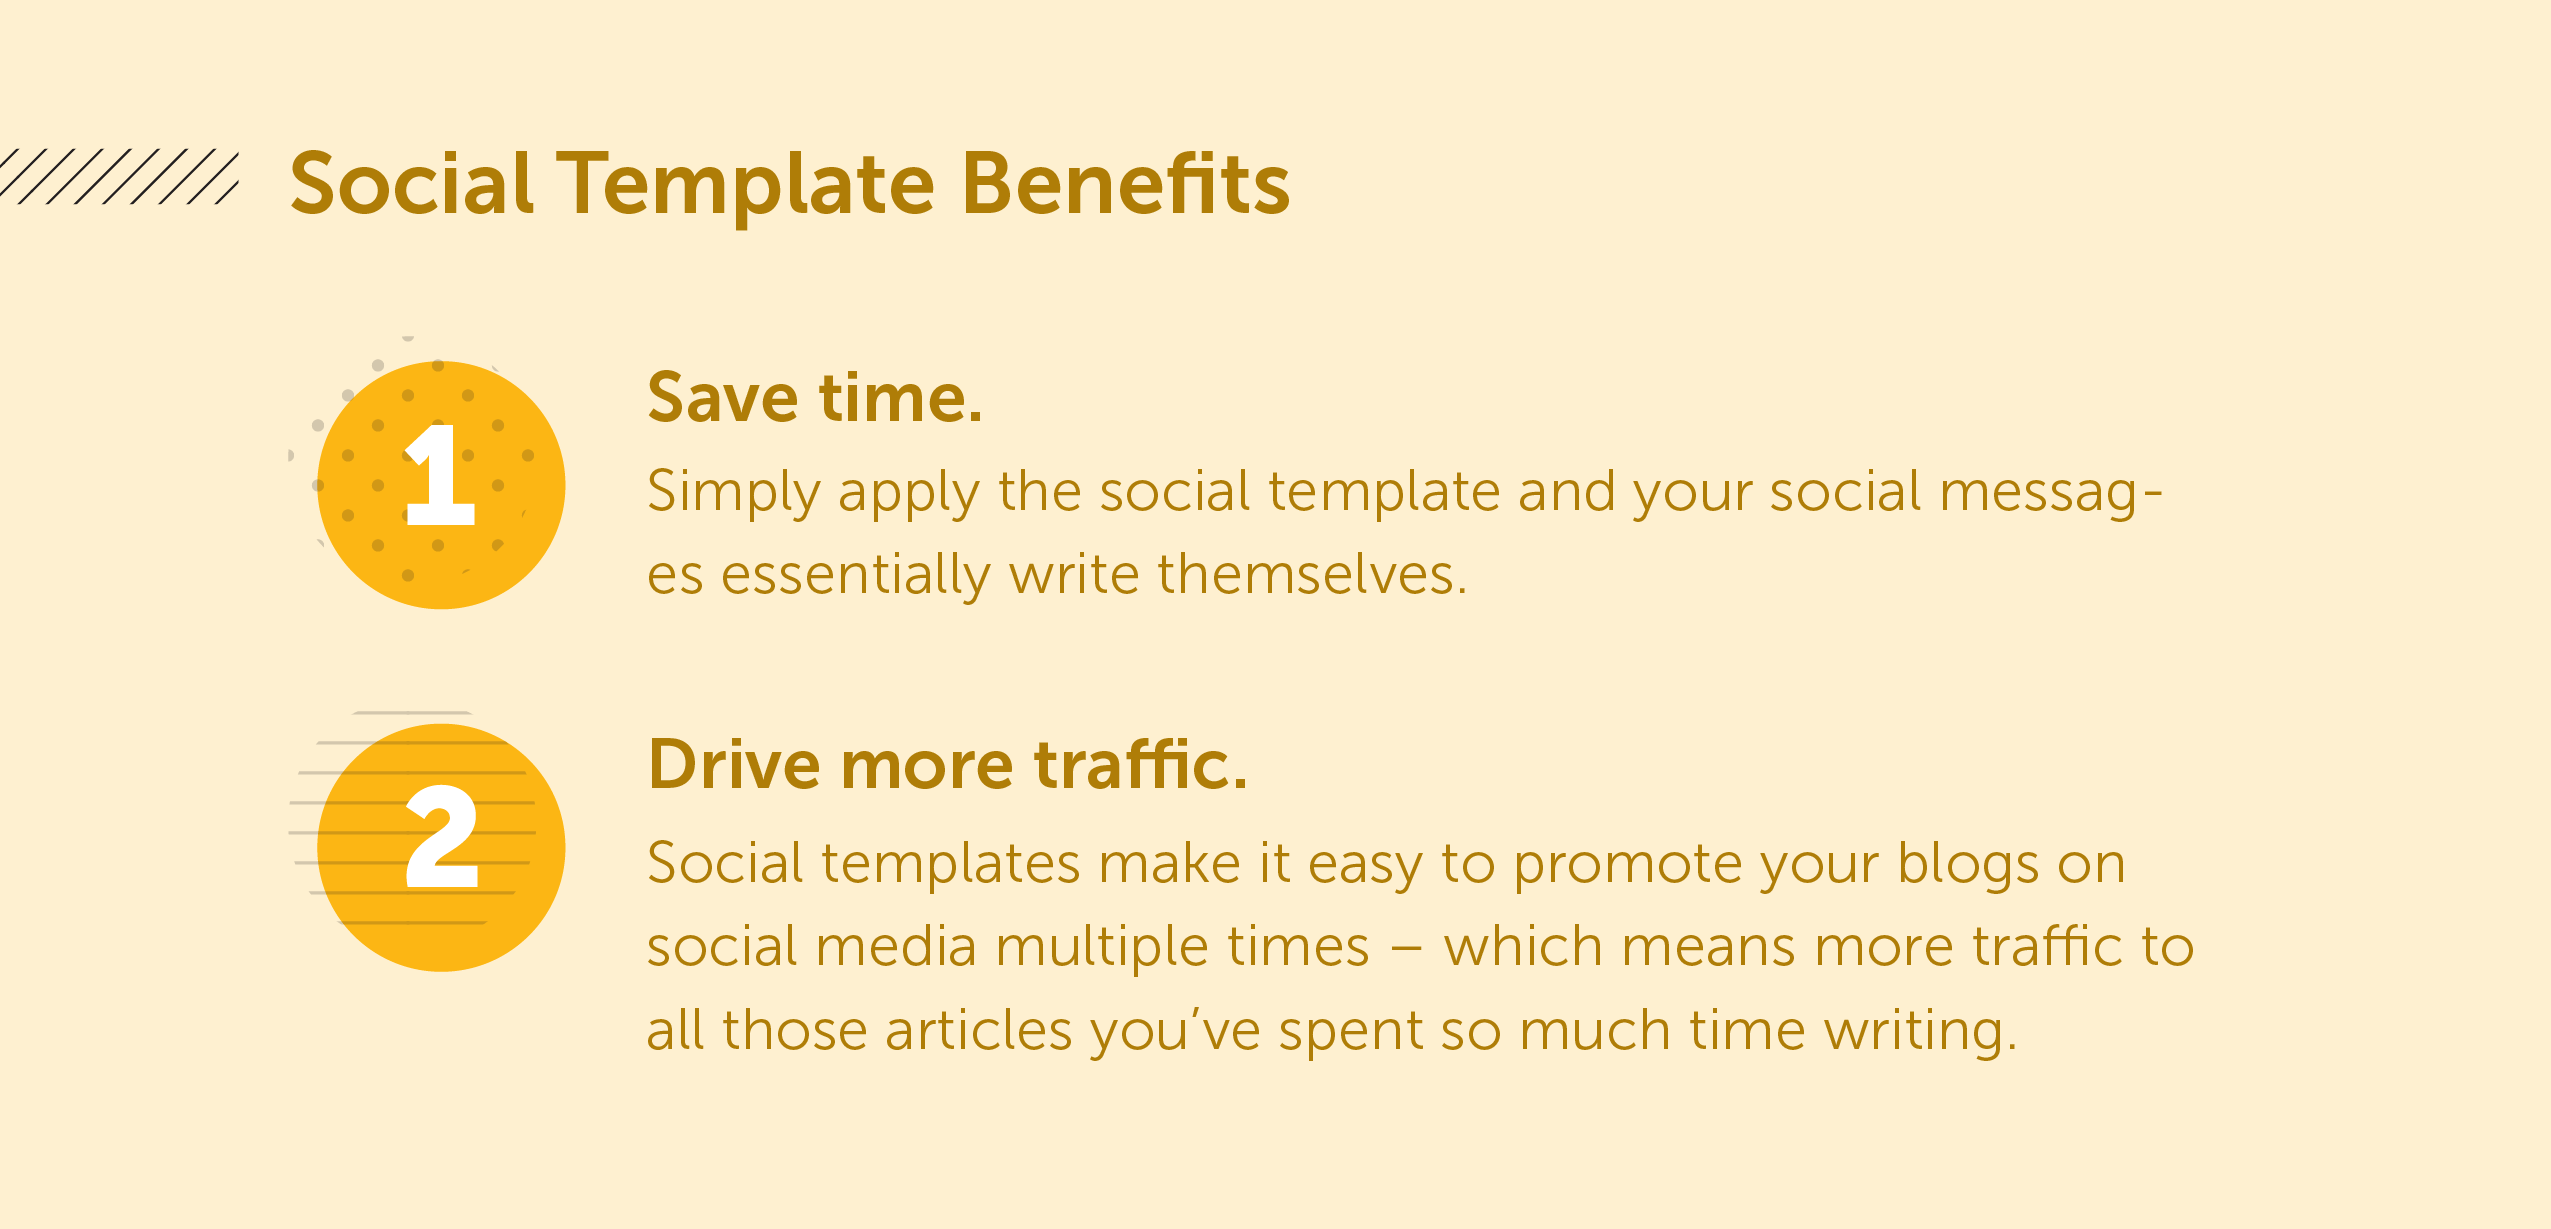 Save Template Benefits. 1: Save time. Simply apply the social template and your social messages essentially writes themselves. 2: Drive more traffic. Social templates make it easy to promote your blogs on social media multiple times.